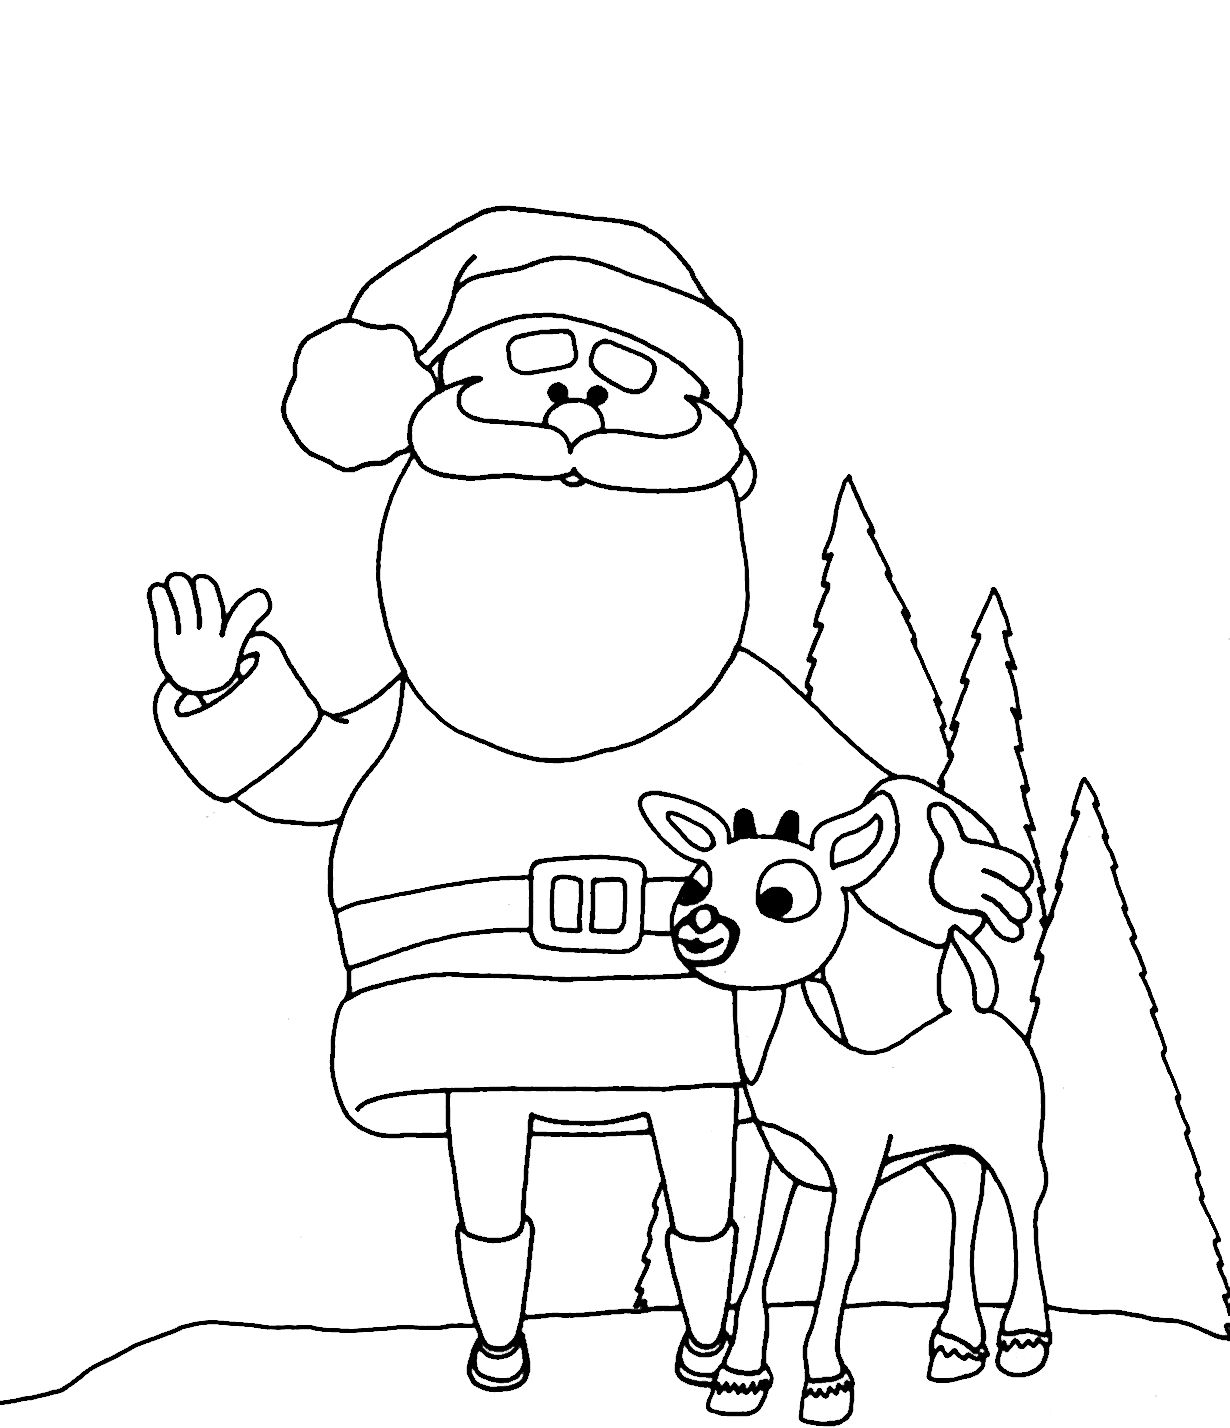 Santa Face Coloring Page With Free Printable Claus Pages For Kids